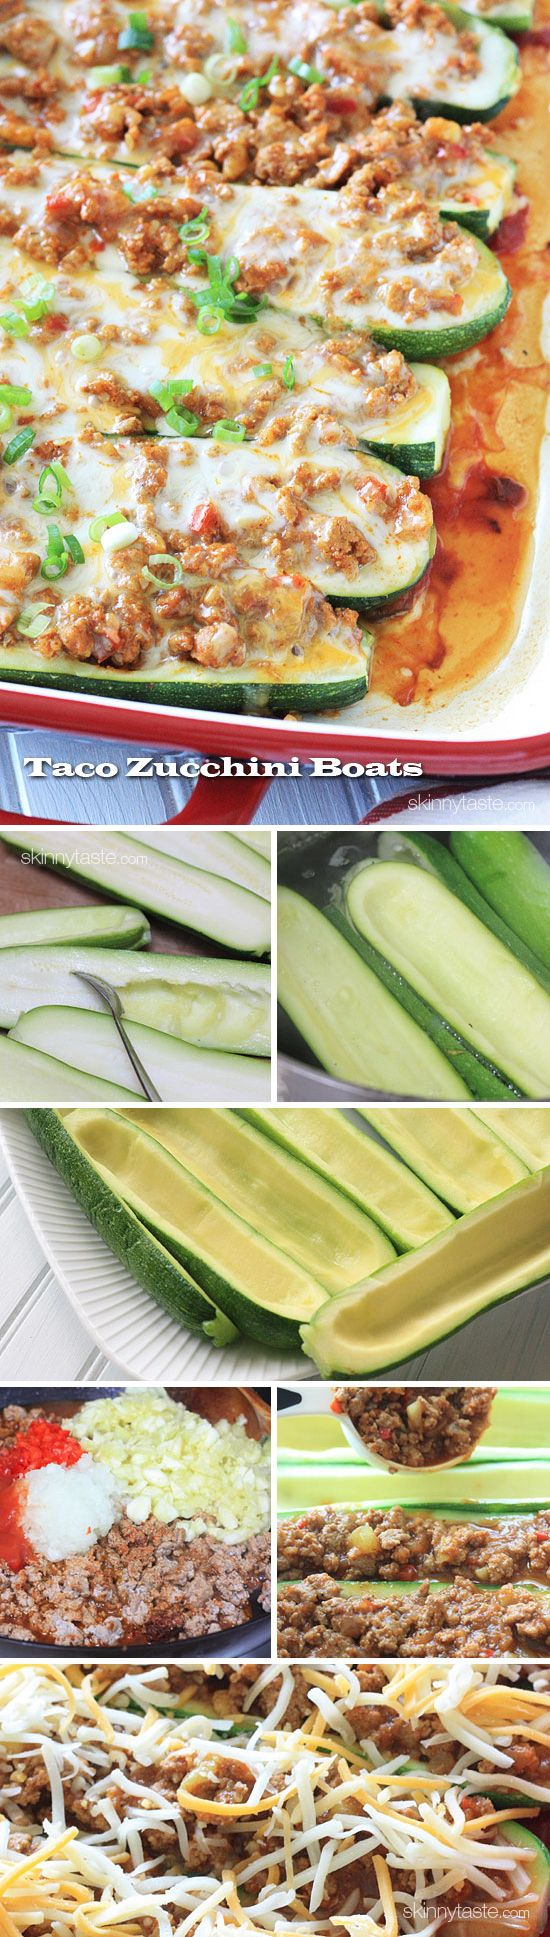 Taco Zucchini Boats #lowcarb #healthy